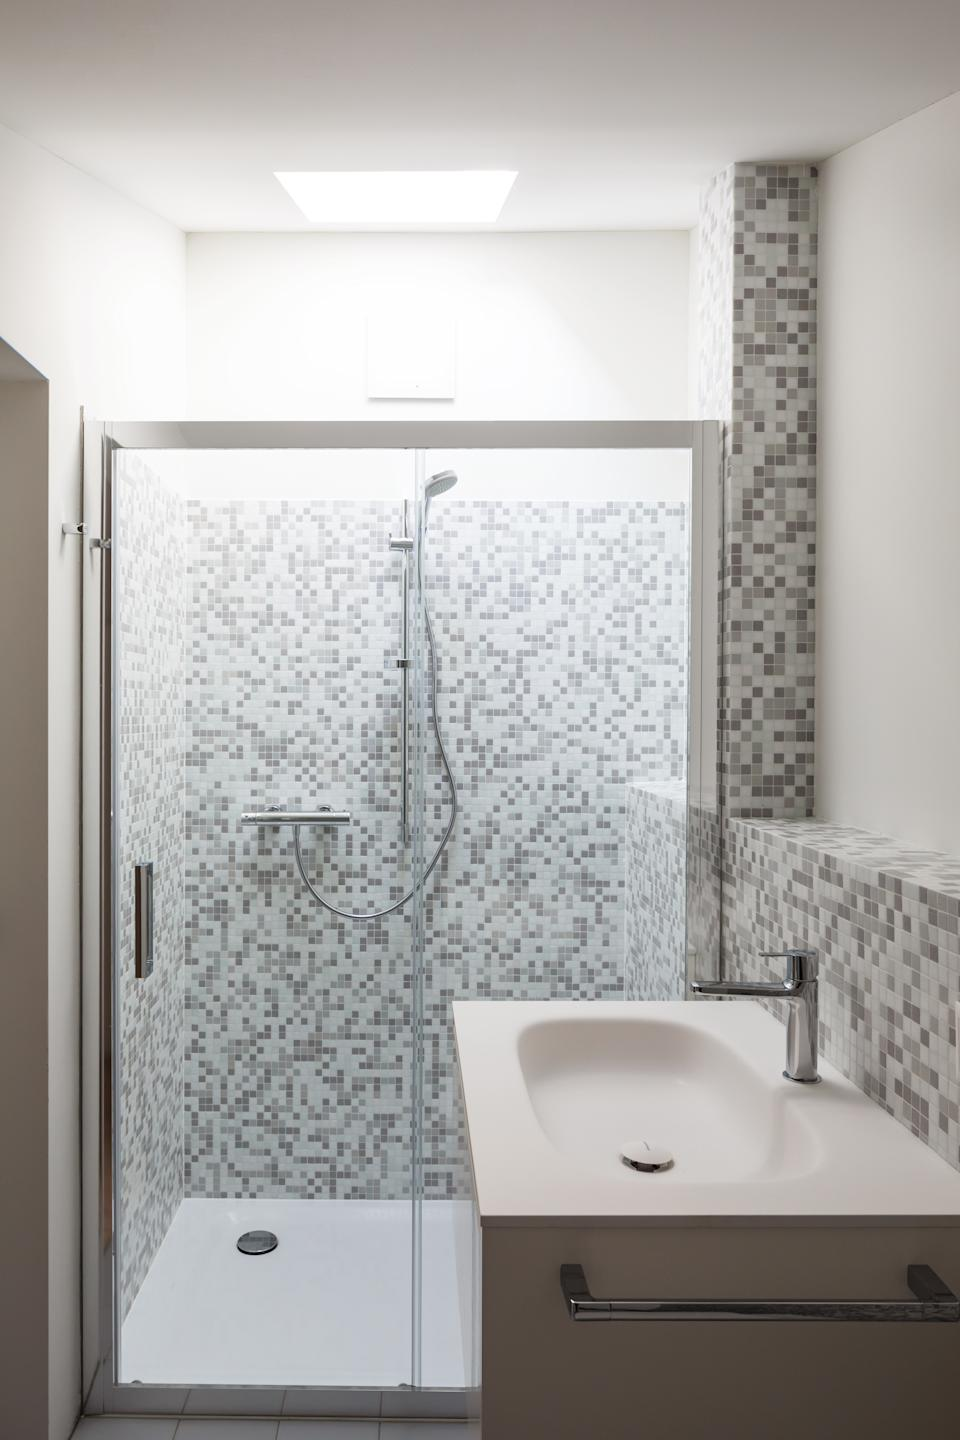 Bathroom renovated with mosaic of grey tiles. Washbasin, shower and skylight. No one inside